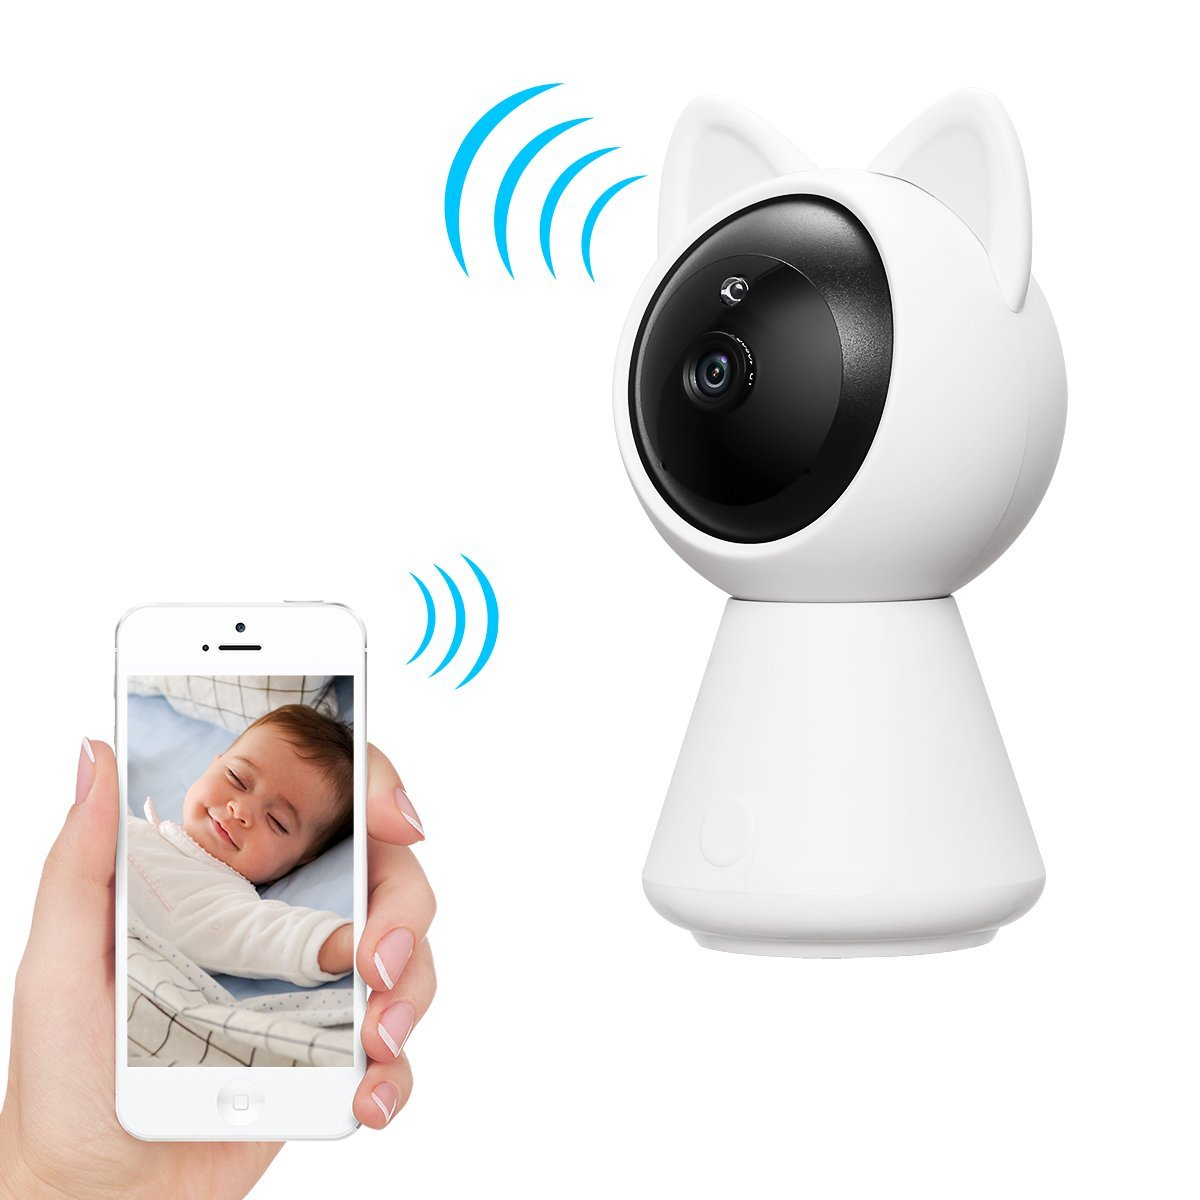 Dome Camera YonRui 1080P HD Pan/Tilt Wireless IP Camera Home Surveillance Security Camera System Baby Monitor with Night Vision Motion Alarm iOS, Android App(White)